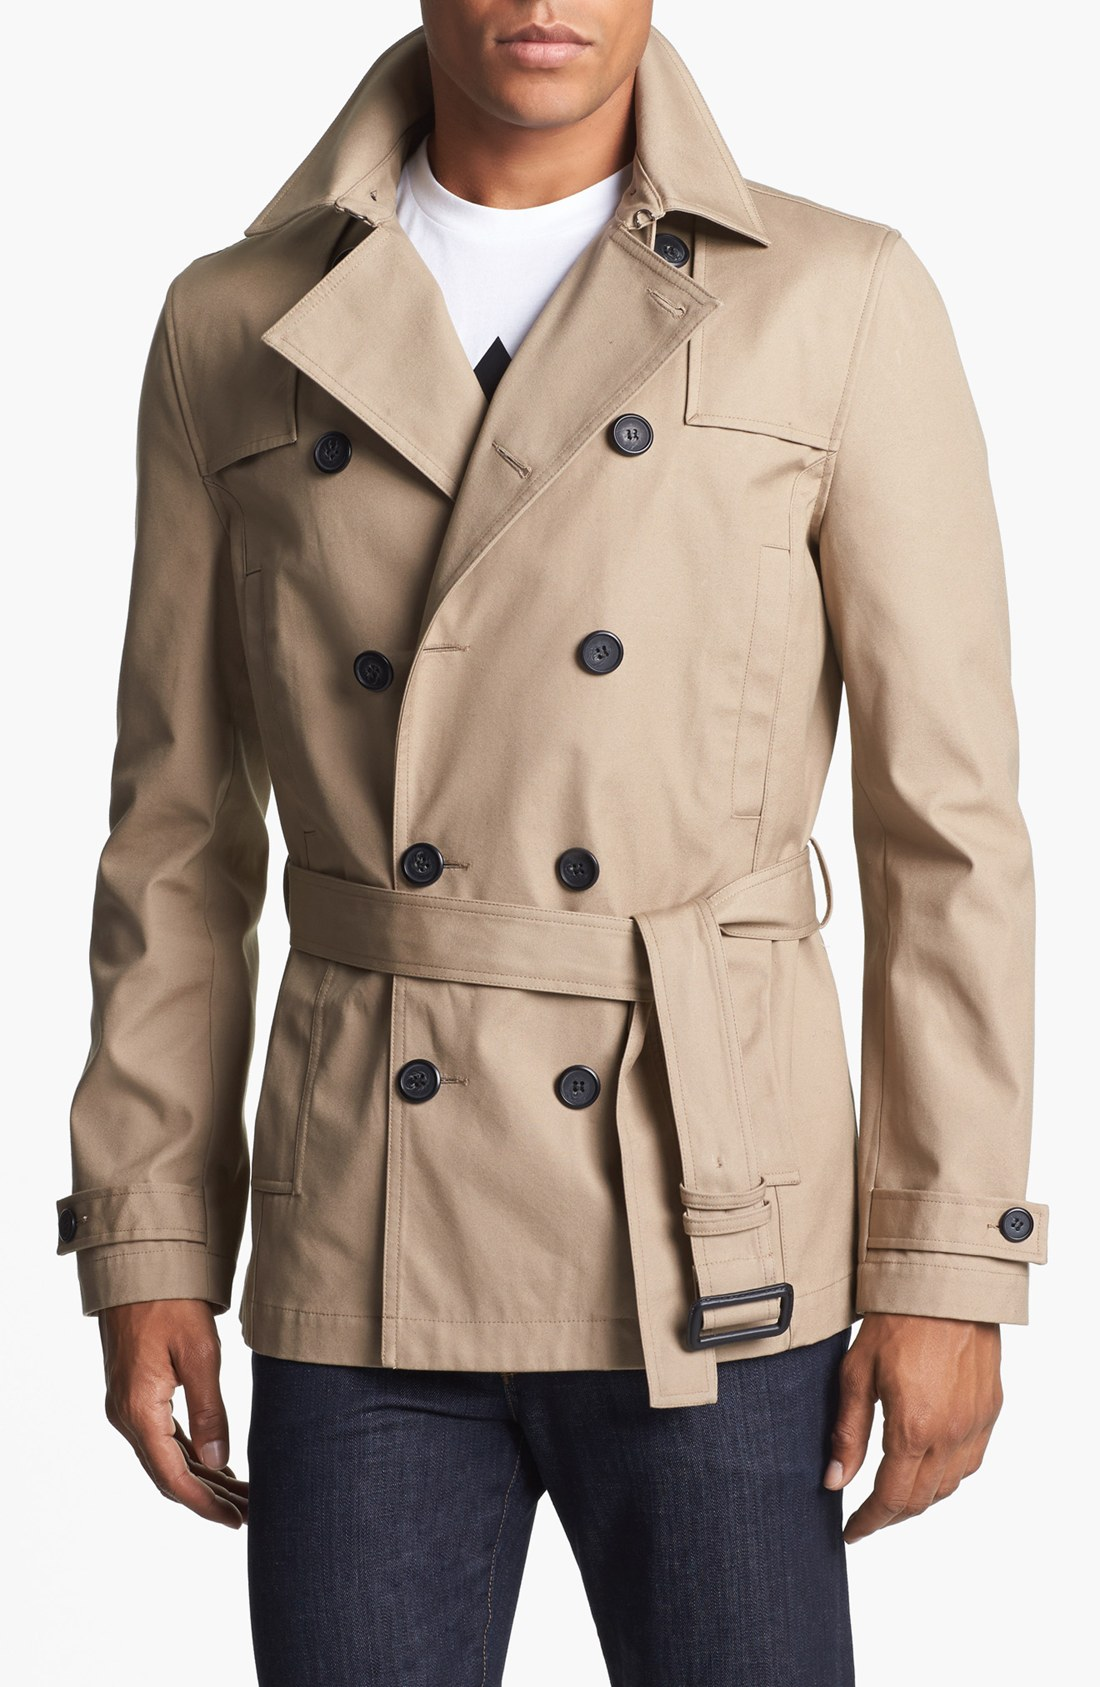 Double-Breasted Short Trench Coat is rated out of 5 by 5. Rated 5 out of 5 by Xinlei from Impressive Trench Coat This trench coat is quite suitable for rainy days in cold winter.4/5(5).